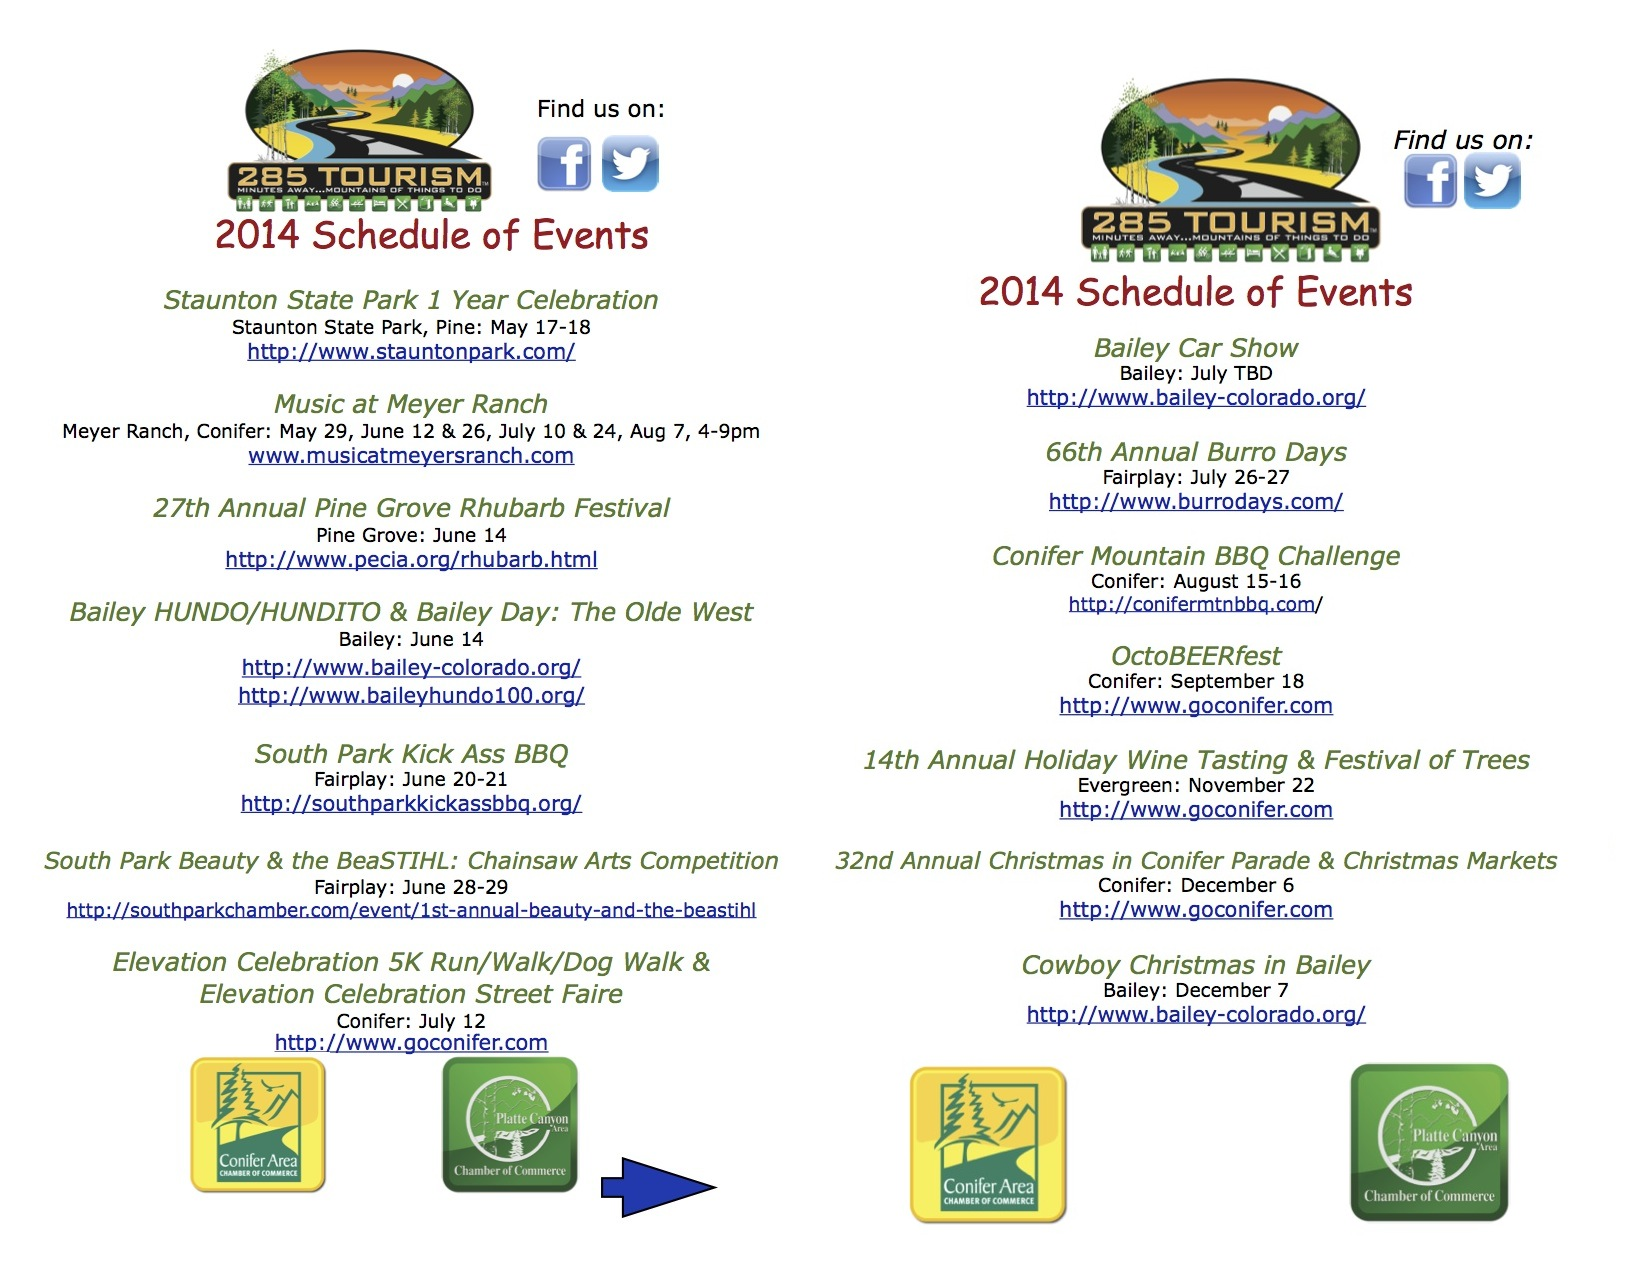 2014 Schedule of Events